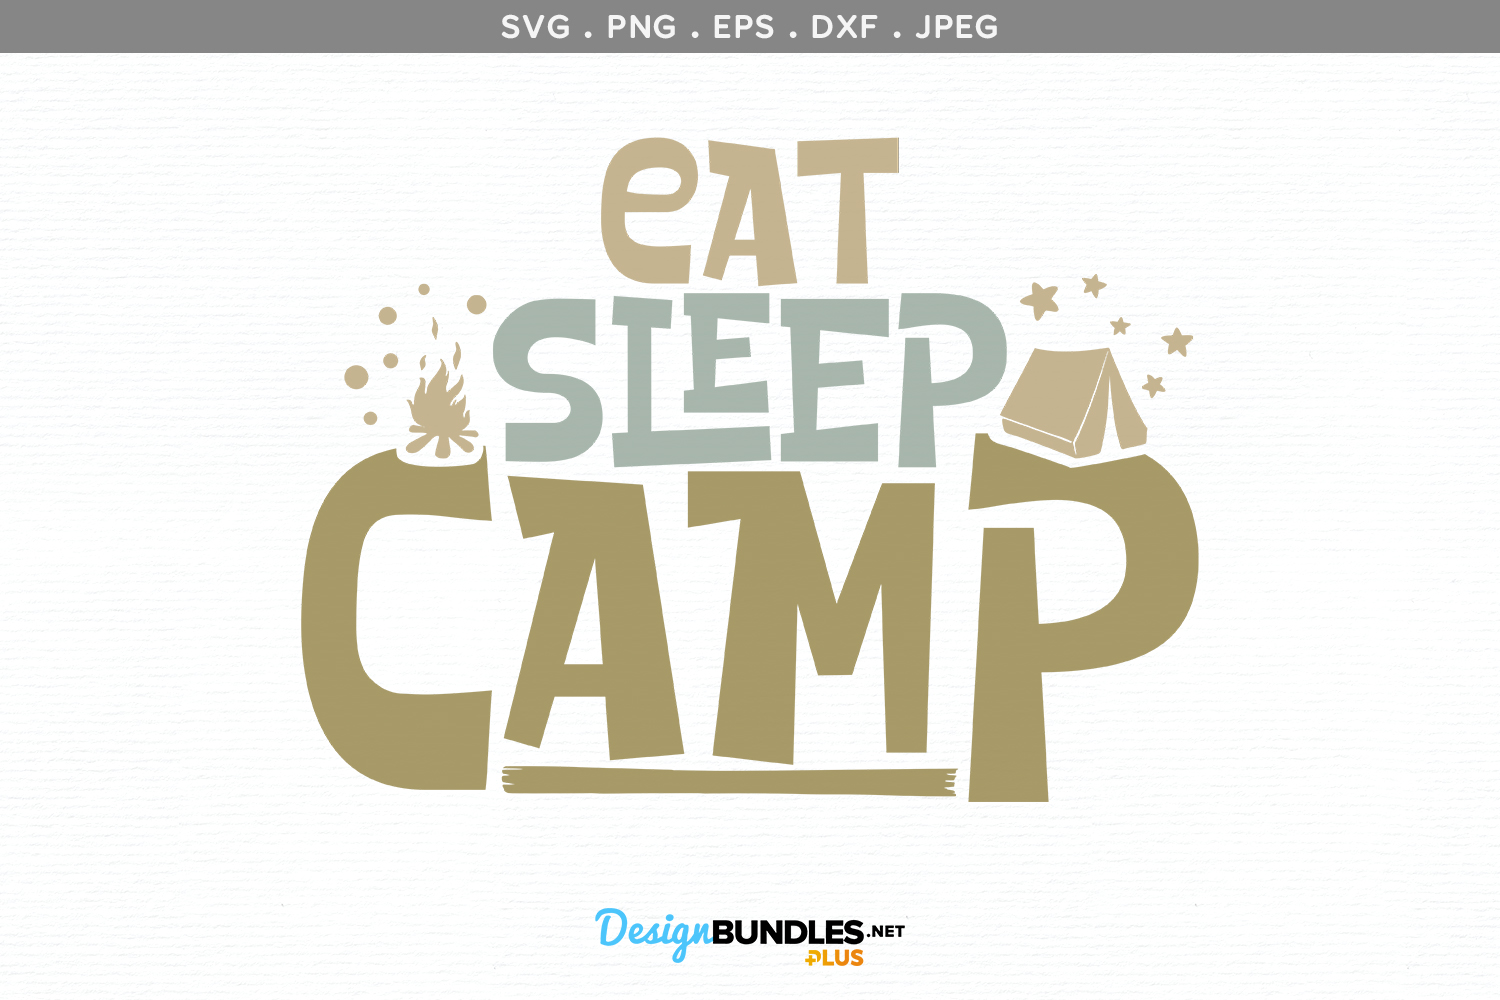 Eat, Sleep, Camp - svg design example image 2